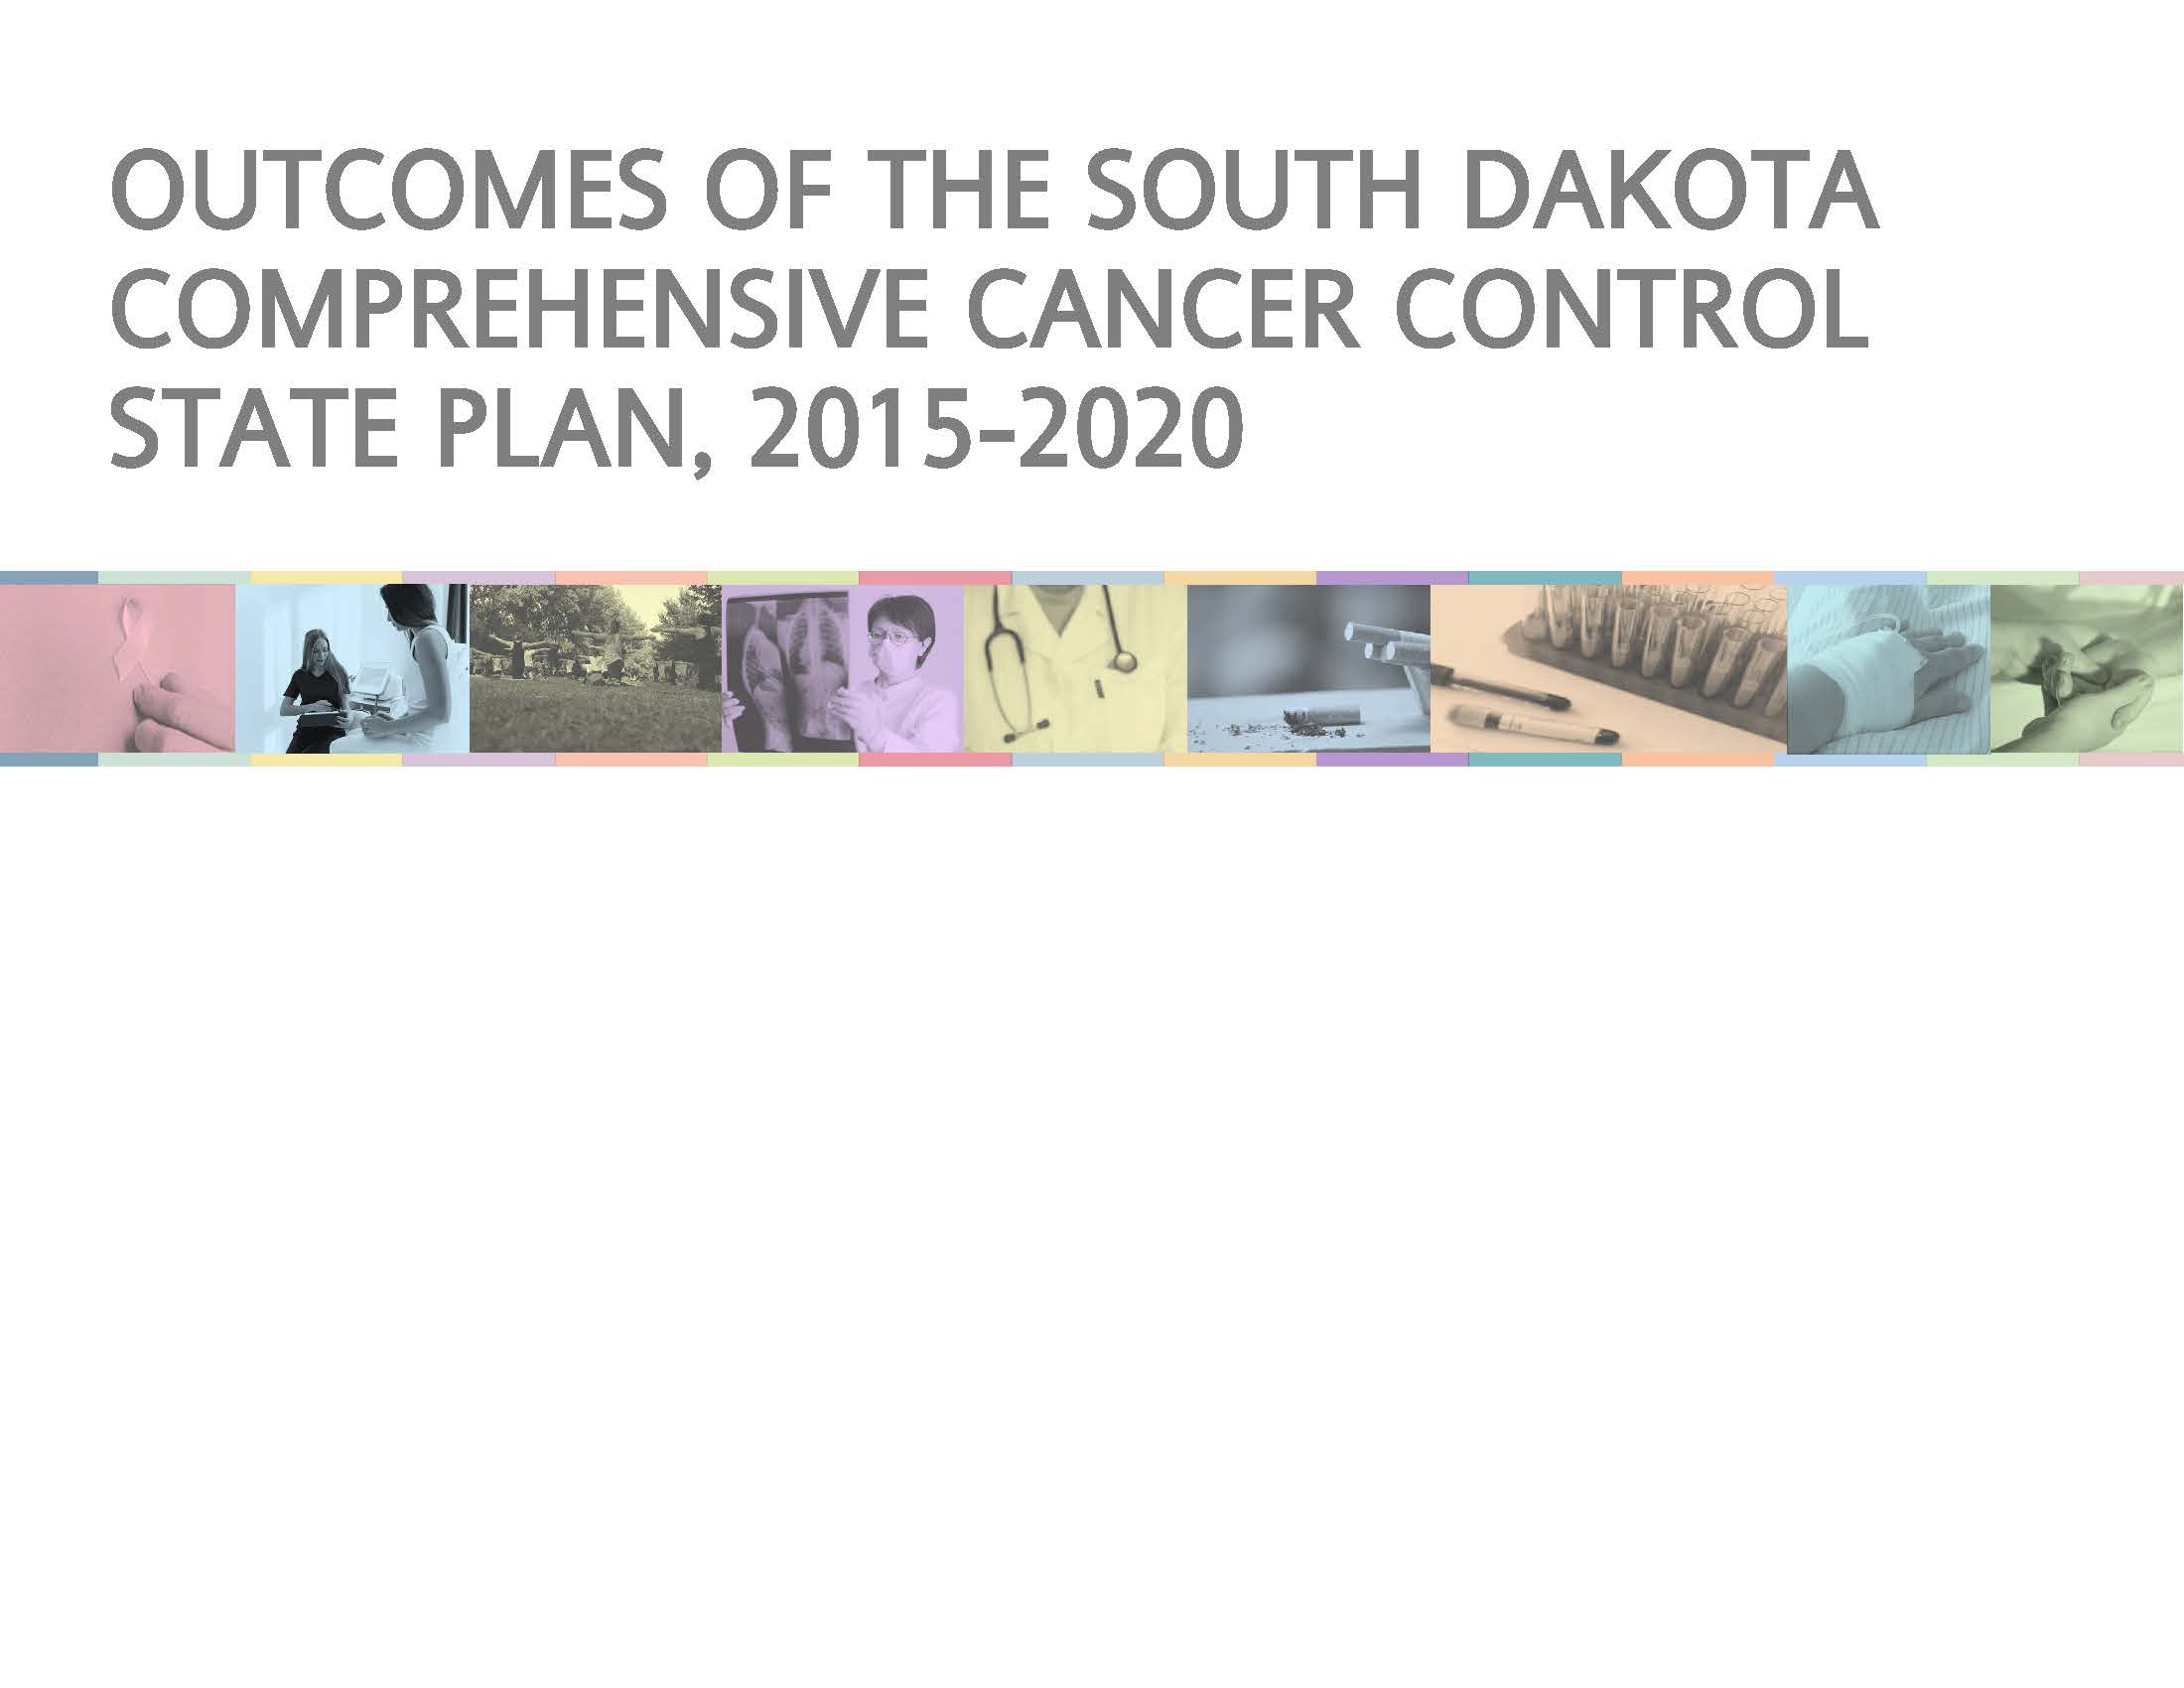 Outcomes of the 2015-2020 SD Cancer Plan